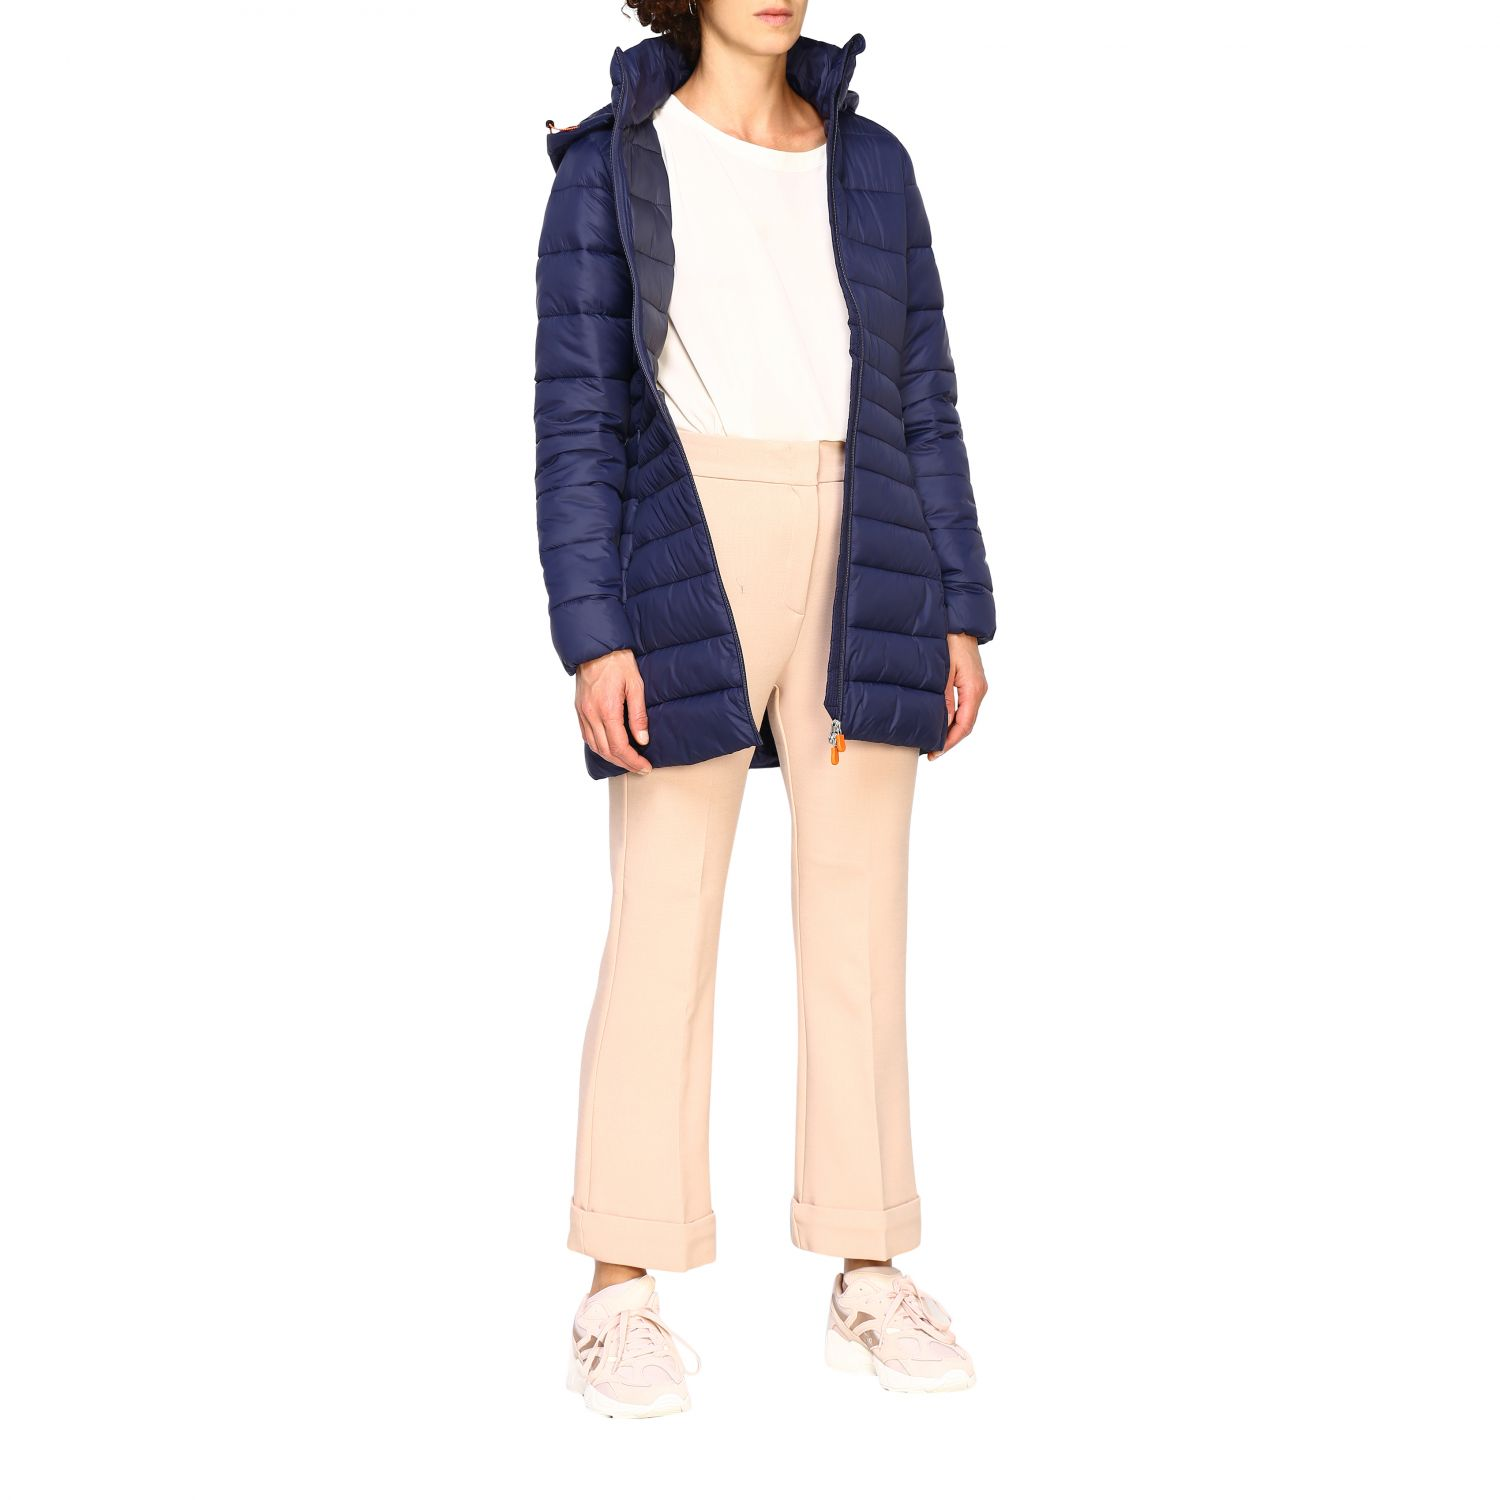 Giacca Save The Duck: Cappotto donna Save The Duck blue navy 2